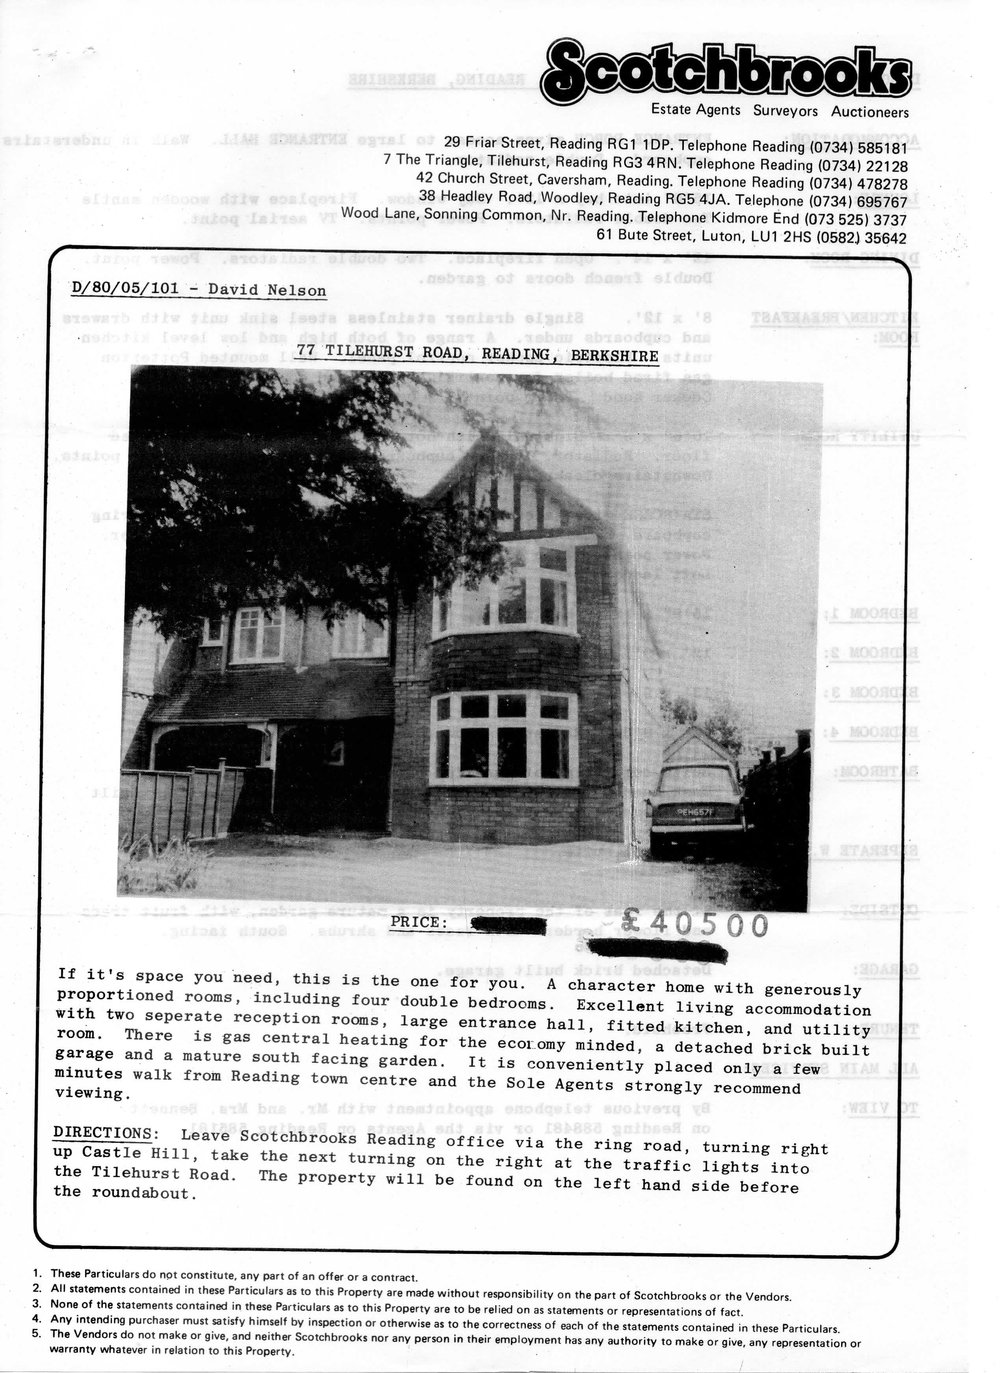 Real Estate flyer for 77 Tilehurst Road.